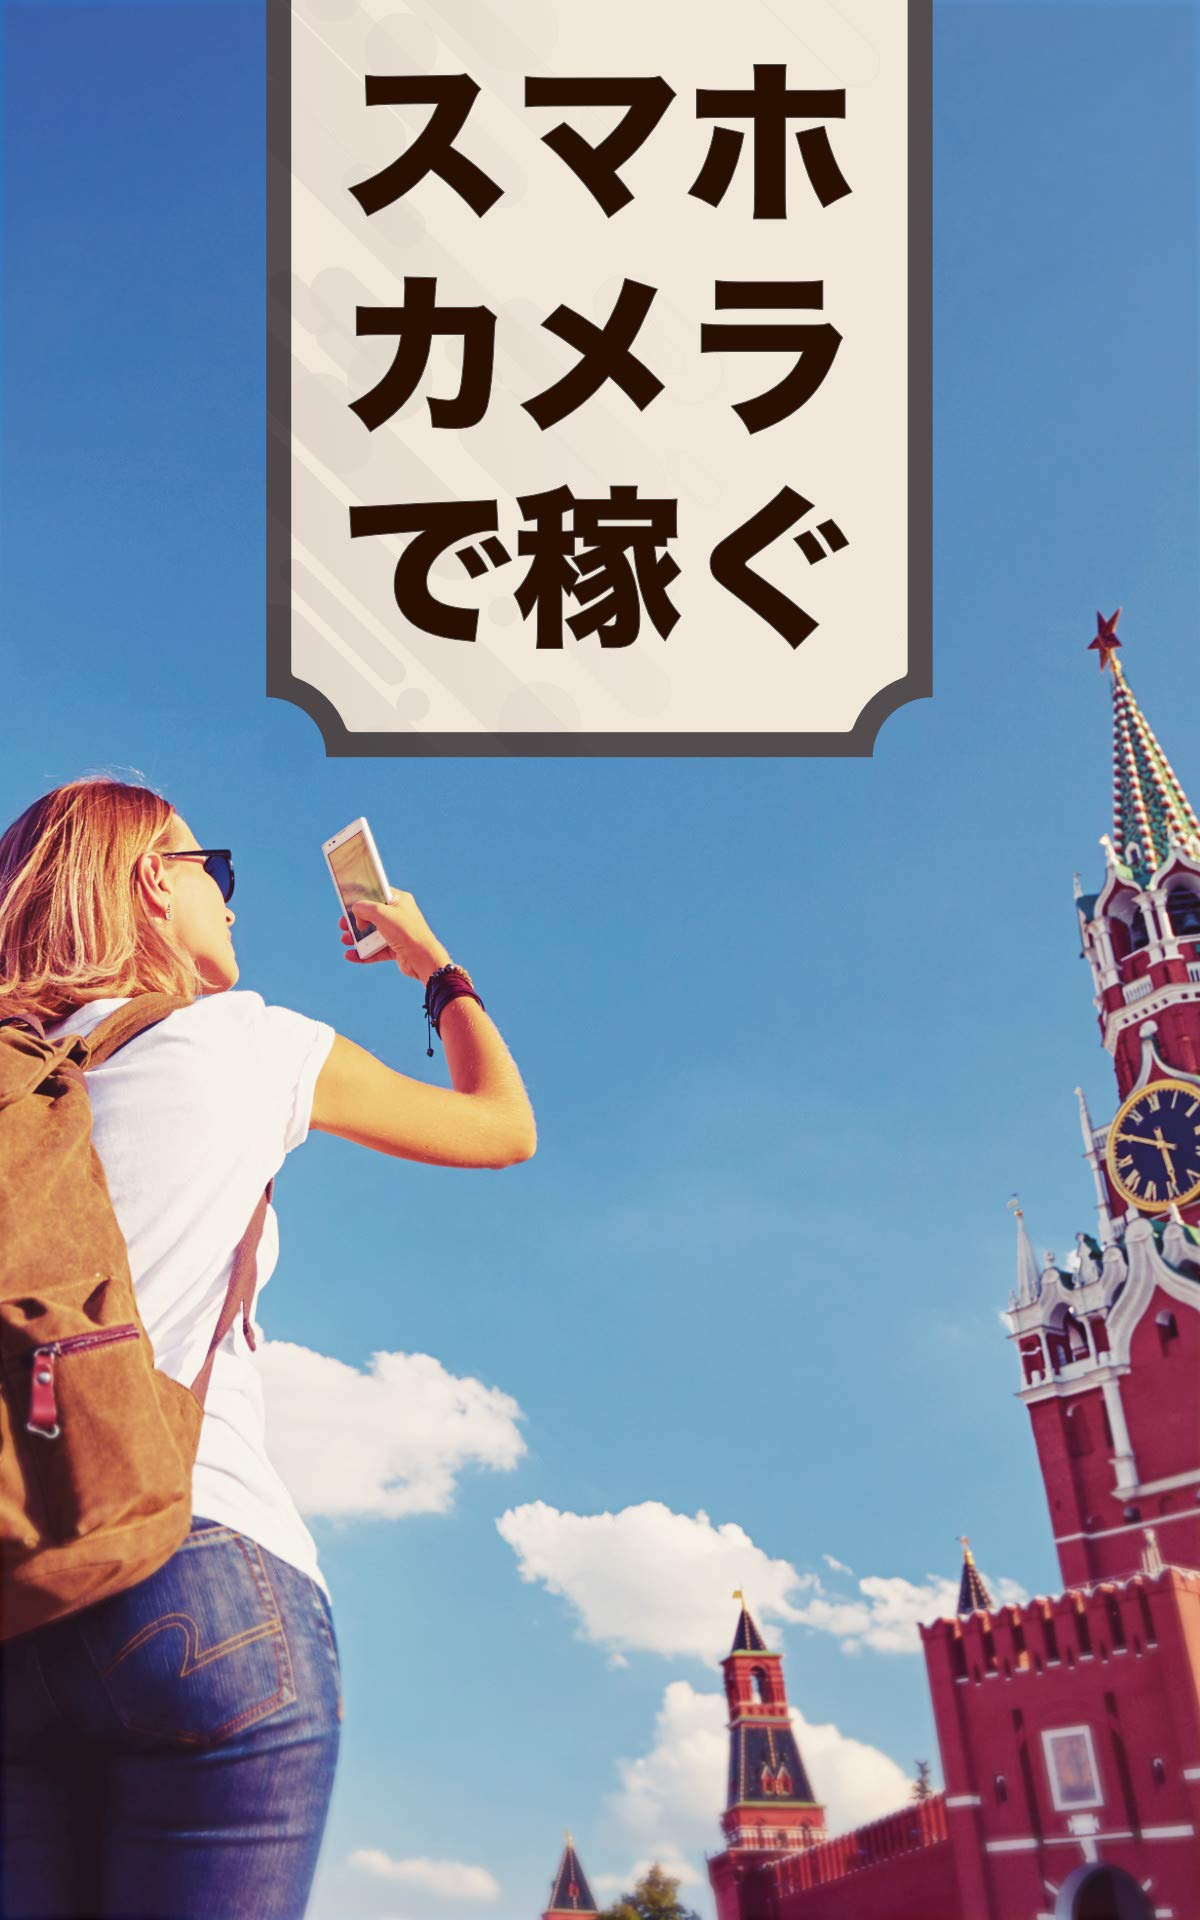 How To Earn Money From Smartphone Camera: Earn Money From Your Hobbies Story About Stock Photo (Japanese Edition)